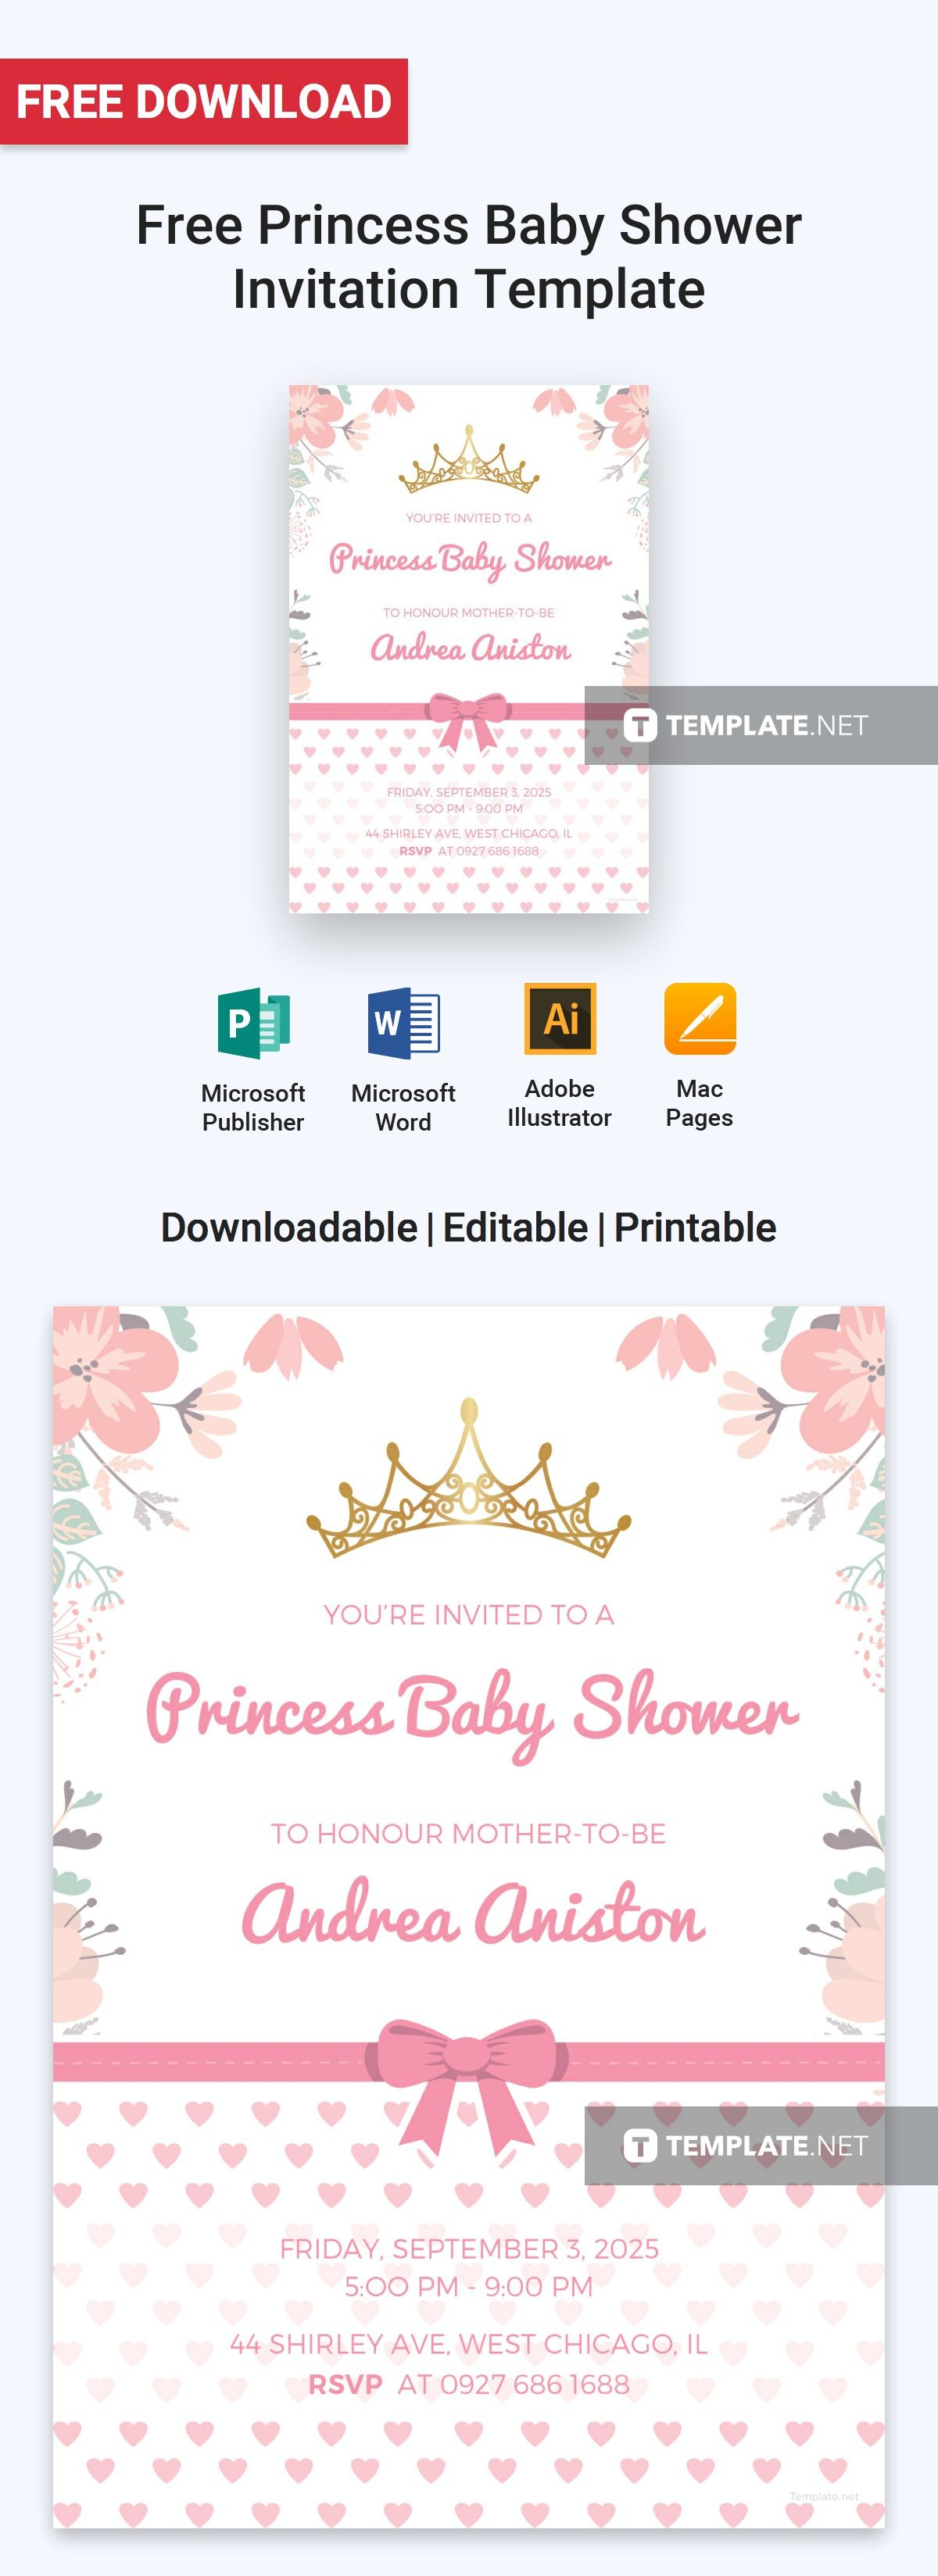 Princess Baby Shower Invitation Templates